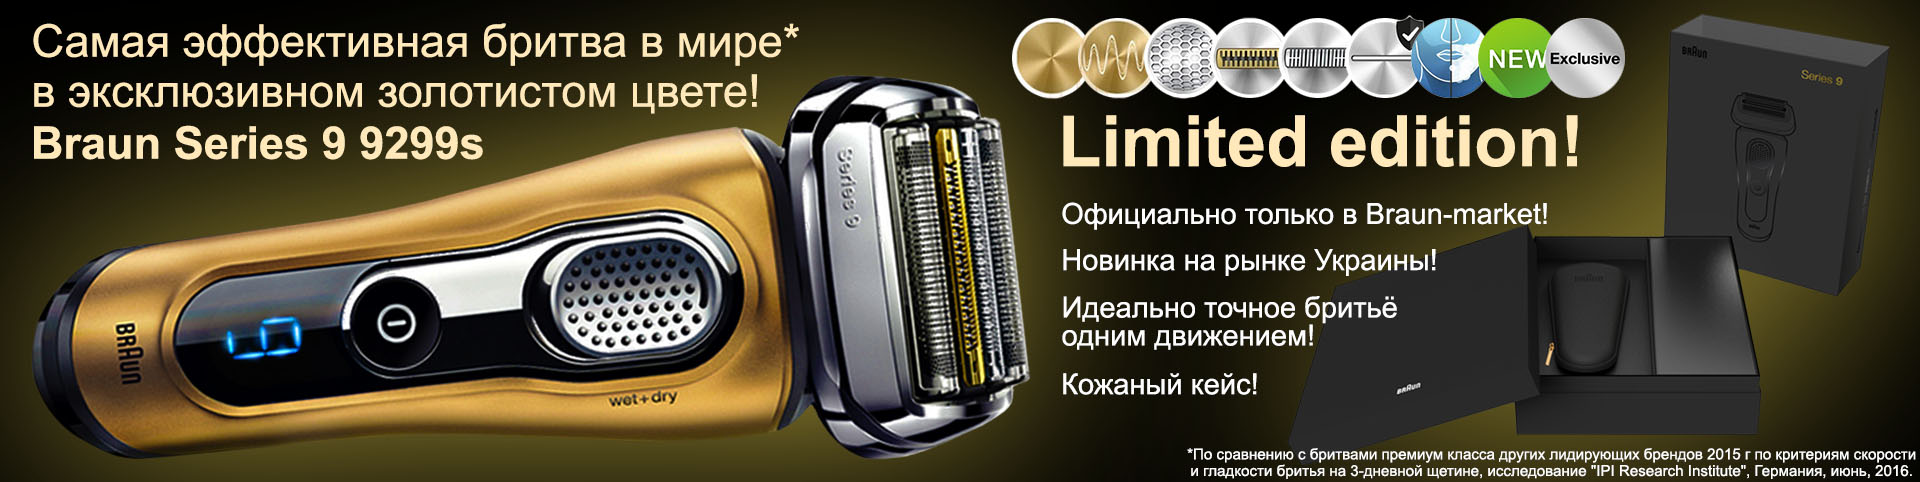 Бритва Braun Series 9 9299s Limited Edition